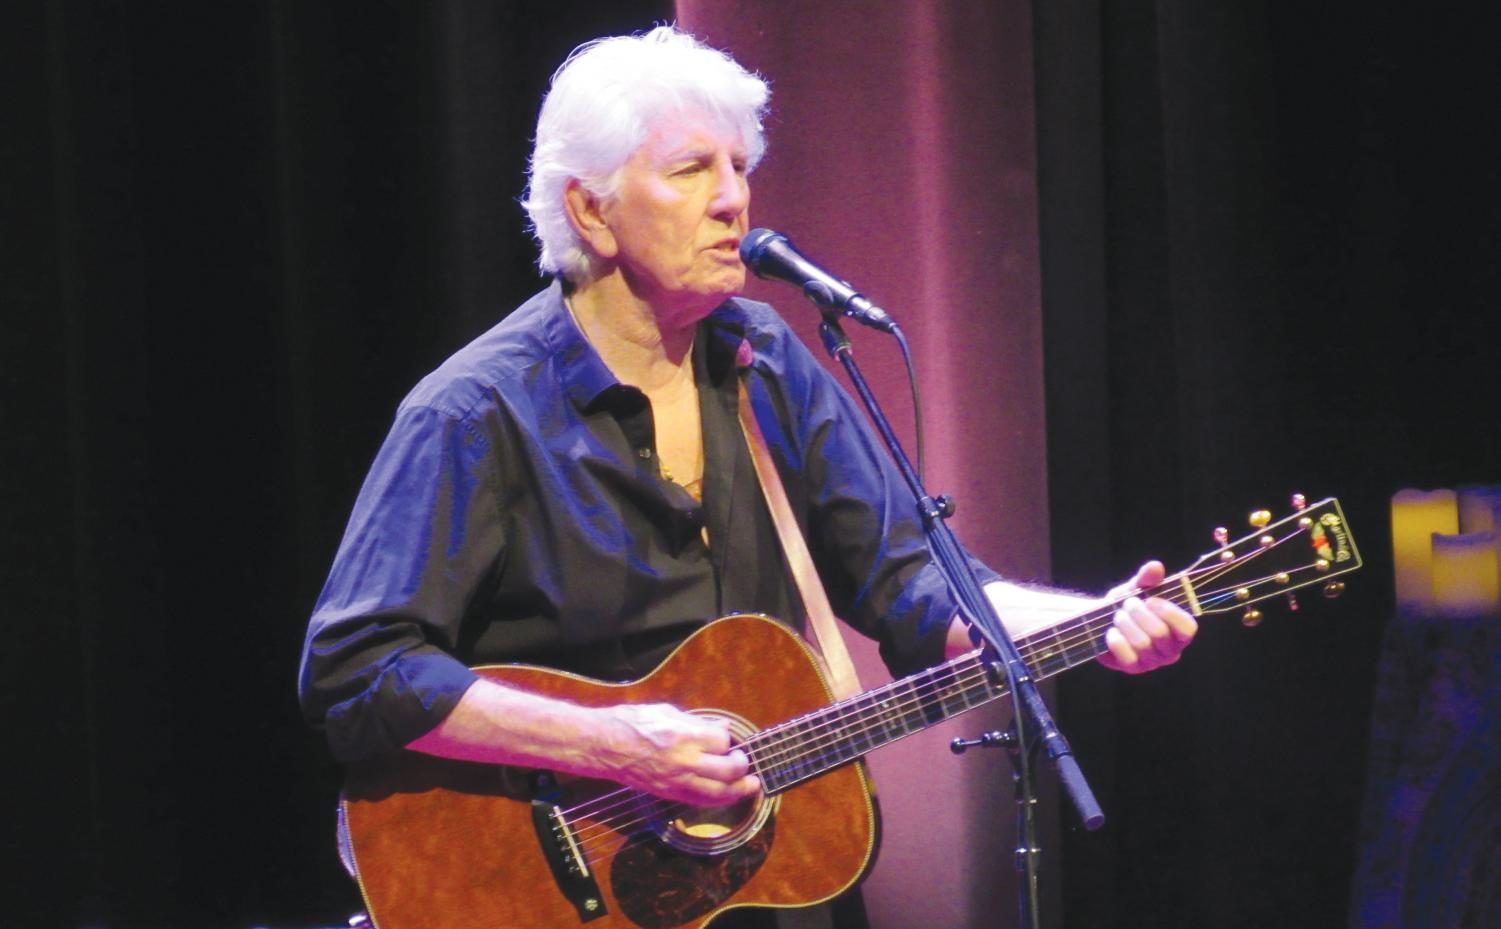 Graham Nash performs new and old songs for community members at the FMU Performing Arts Center. Nash also told the audience about his inspiration behind his songs.